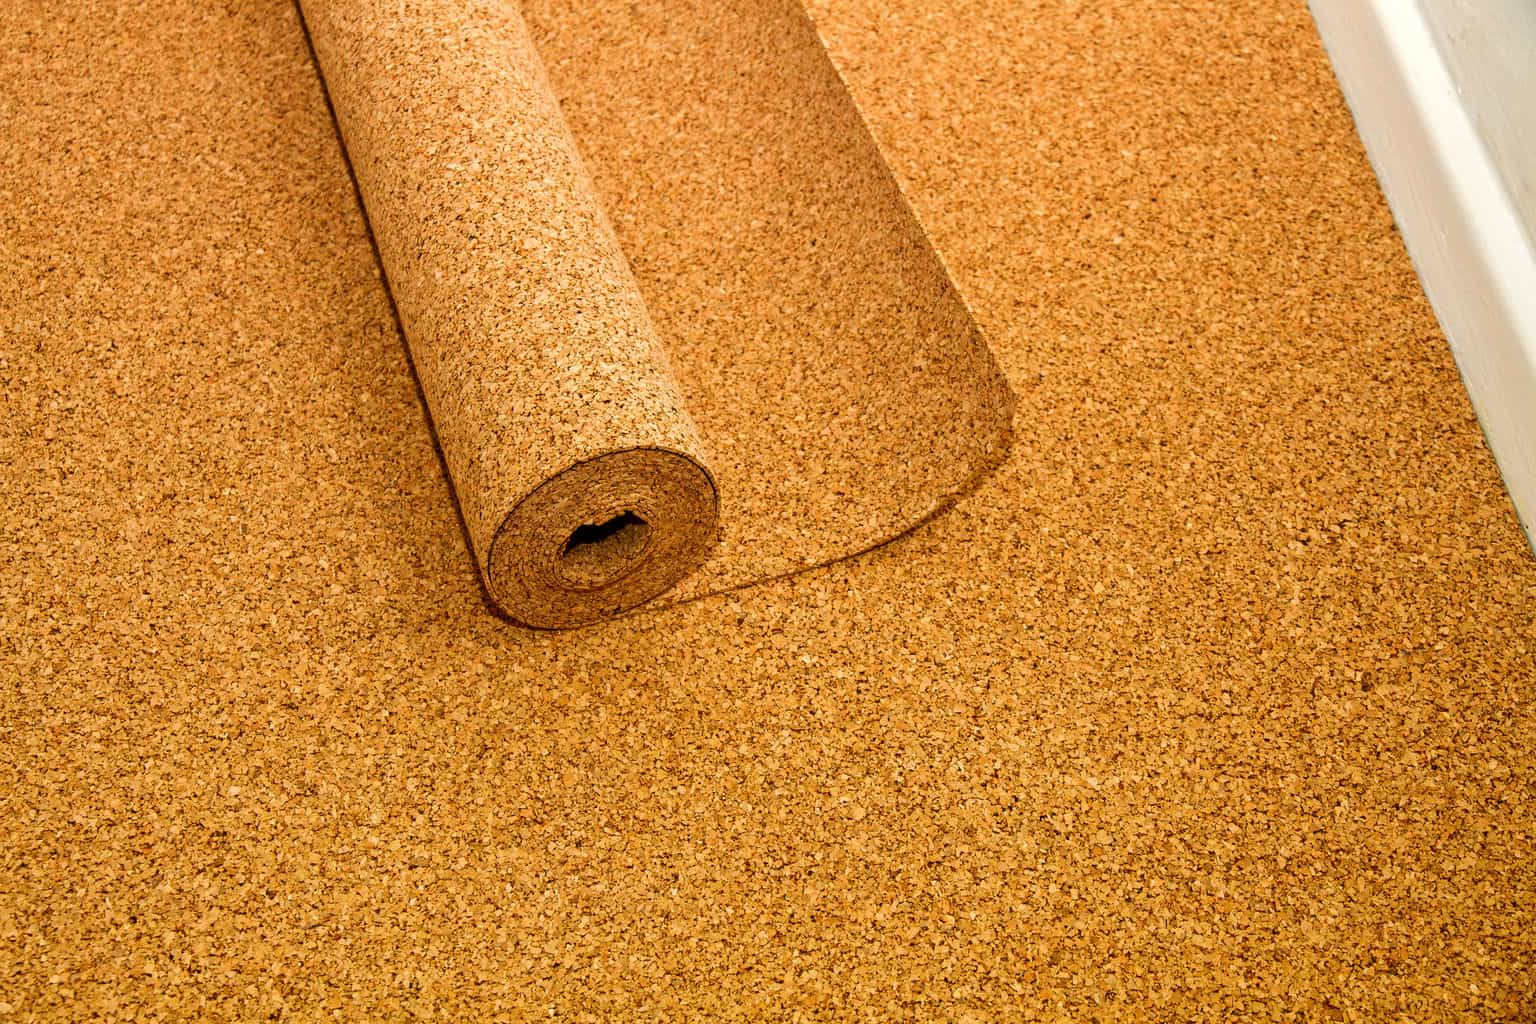 Installing Cork Flooring Is Easy, Whether You Are Installing Cork Tiles Or  Panels. Carefully Read About Cork Flooring Installing Guidelines With Each  ...